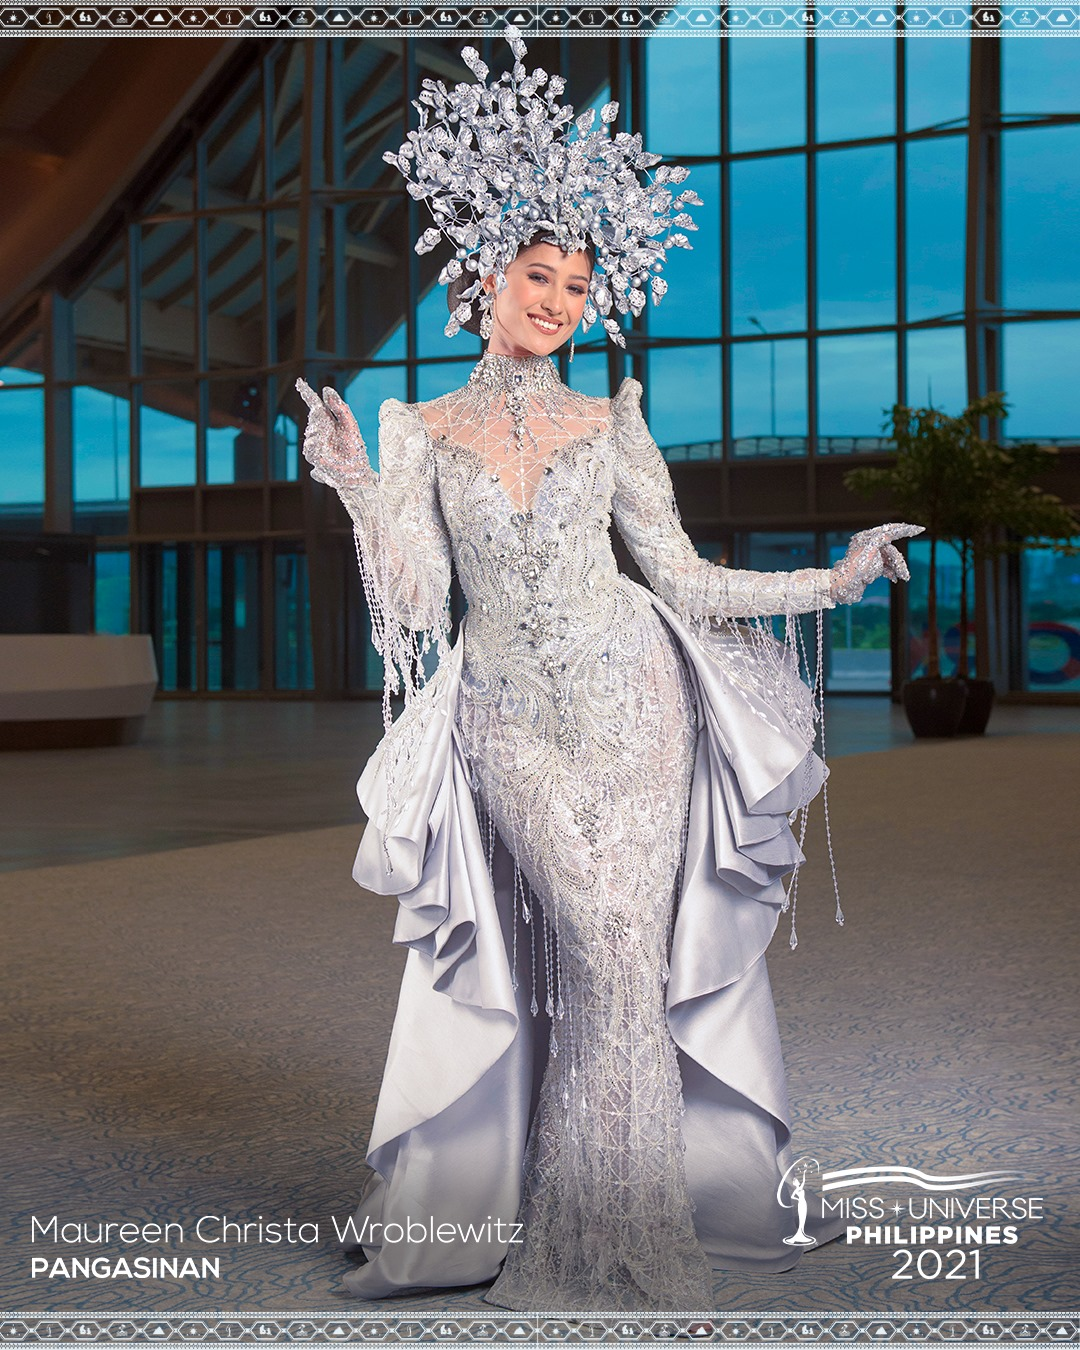 MAUREEN WROBLEWITZ -10 OF THE BEST NATIONAL COSTUMES TO WALK THE MISS UNIVERSE PHILIPPINES 2021 STAGE